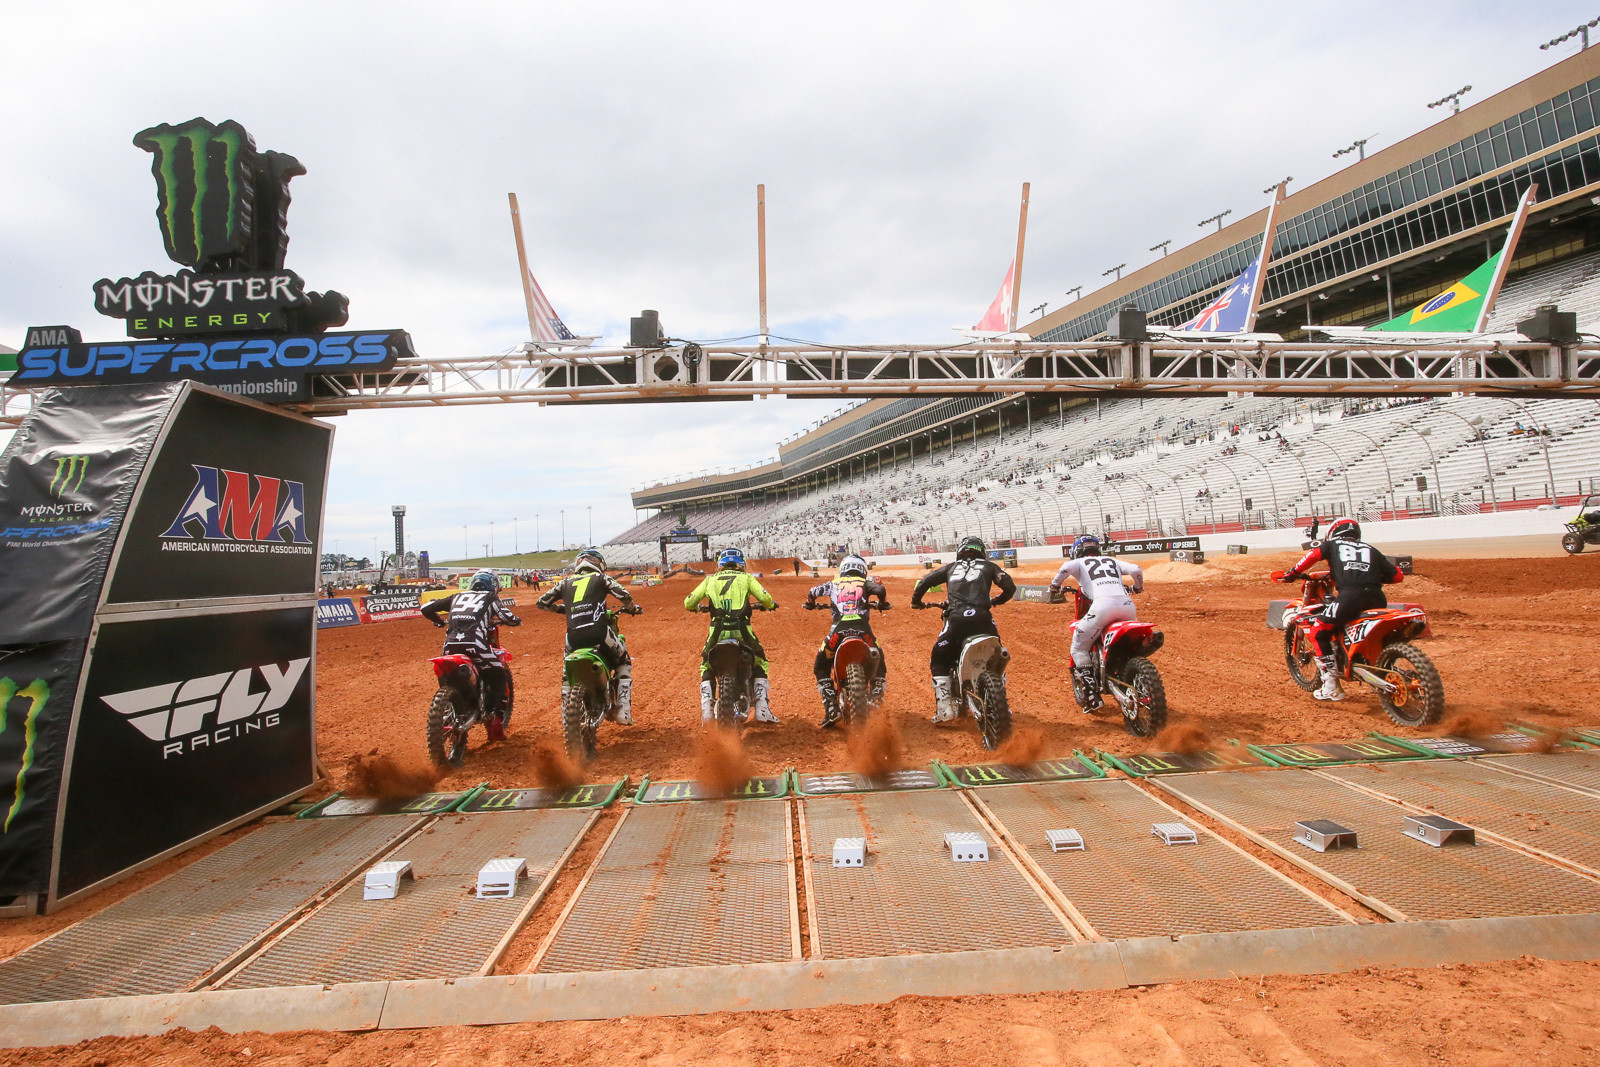 The biggest change to the final round in Atlanta was moving the start. The S-bend through the first couple of corners made for some interesting racing.